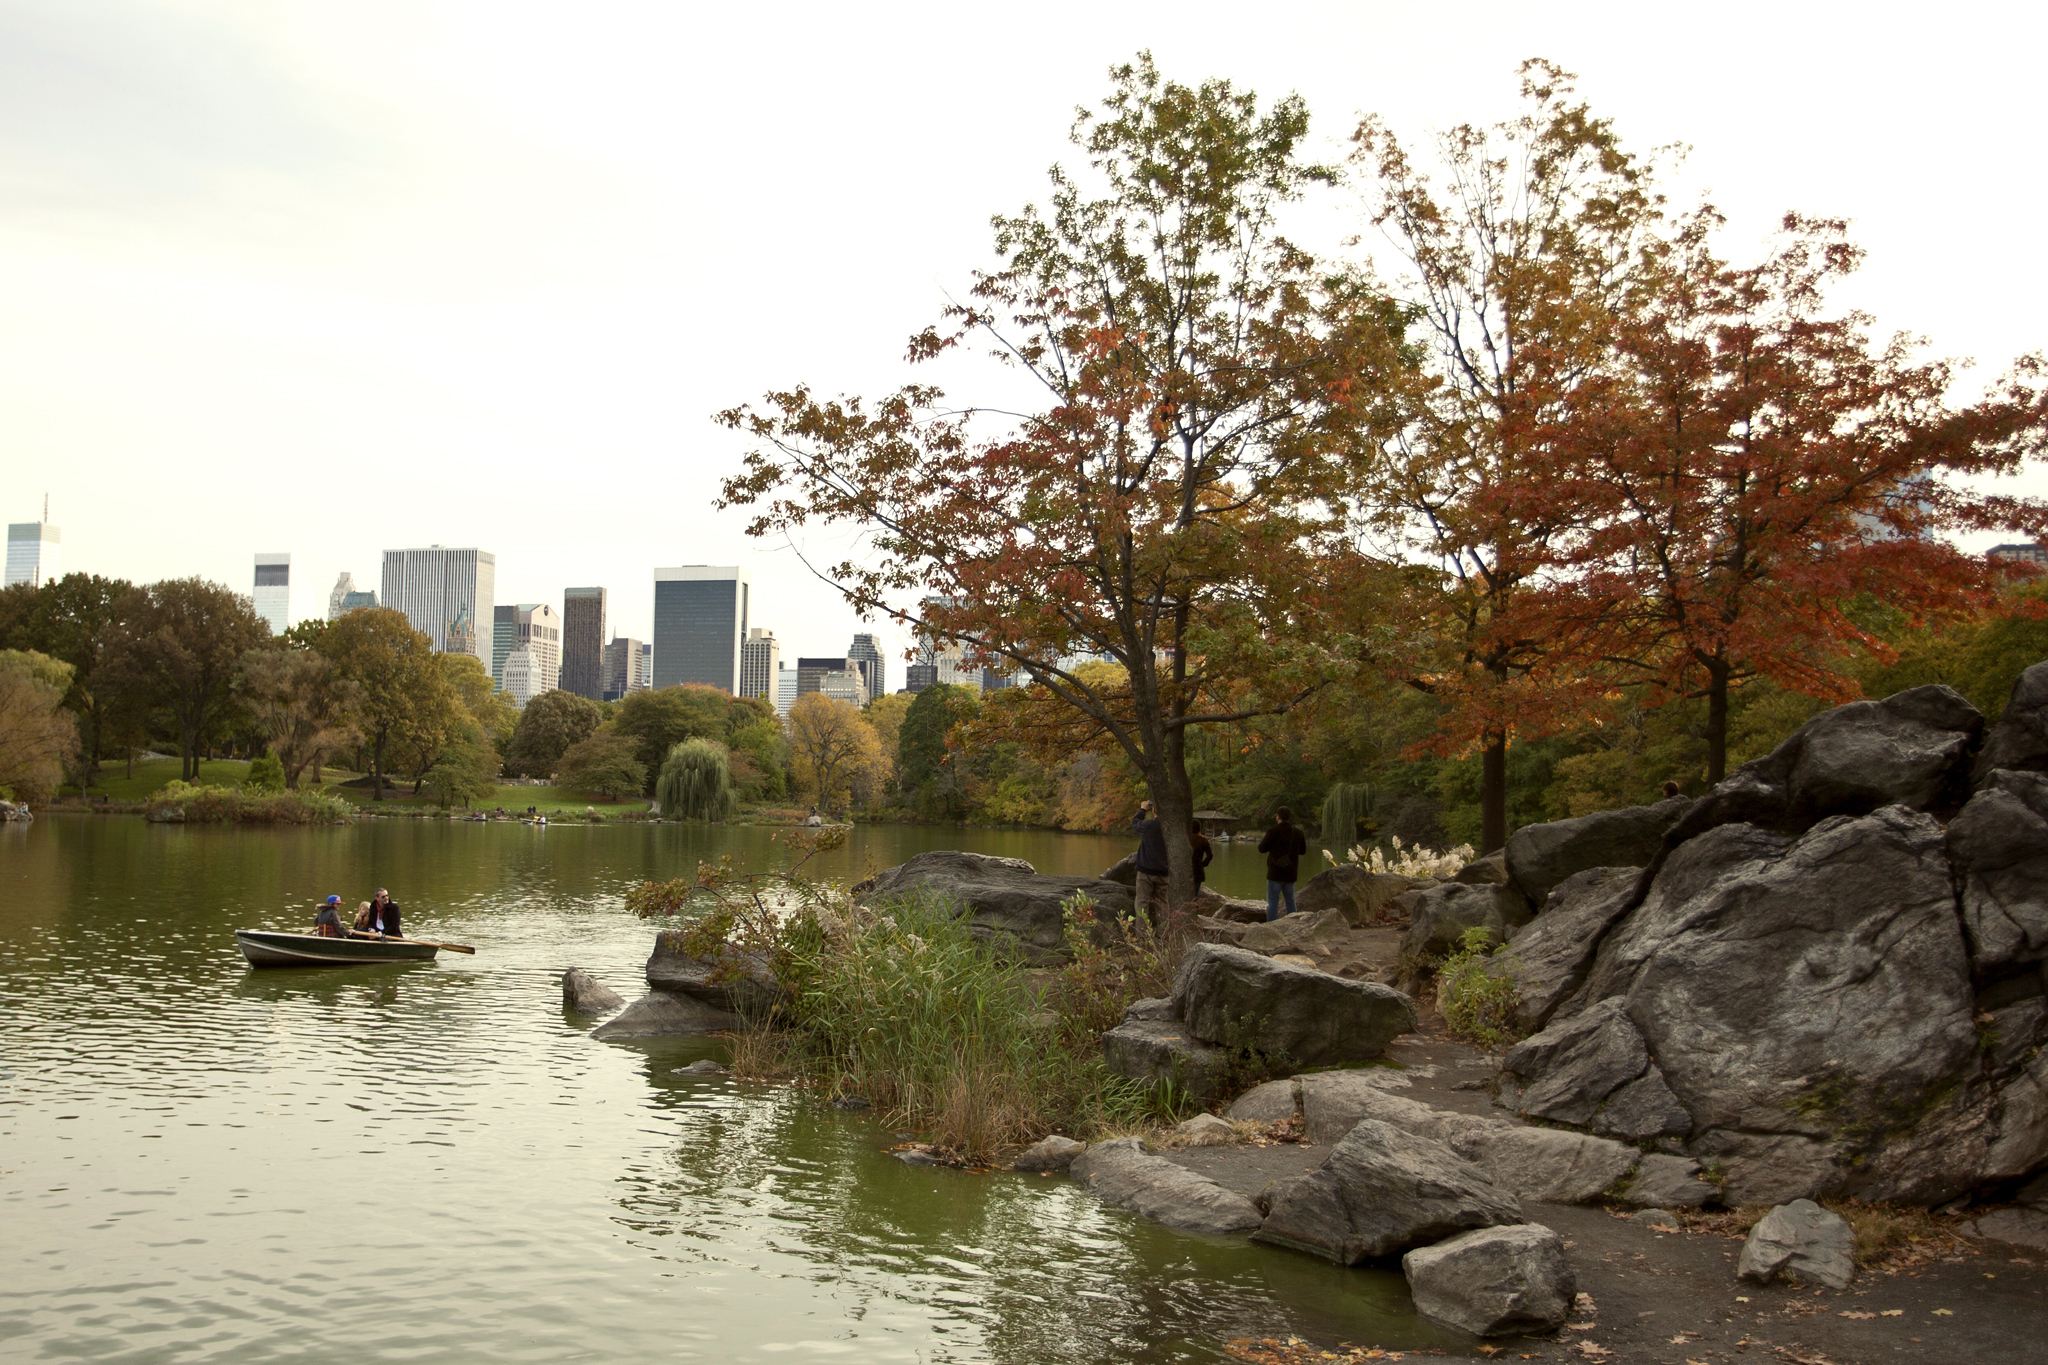 Best park to explore (TIE): Central Park